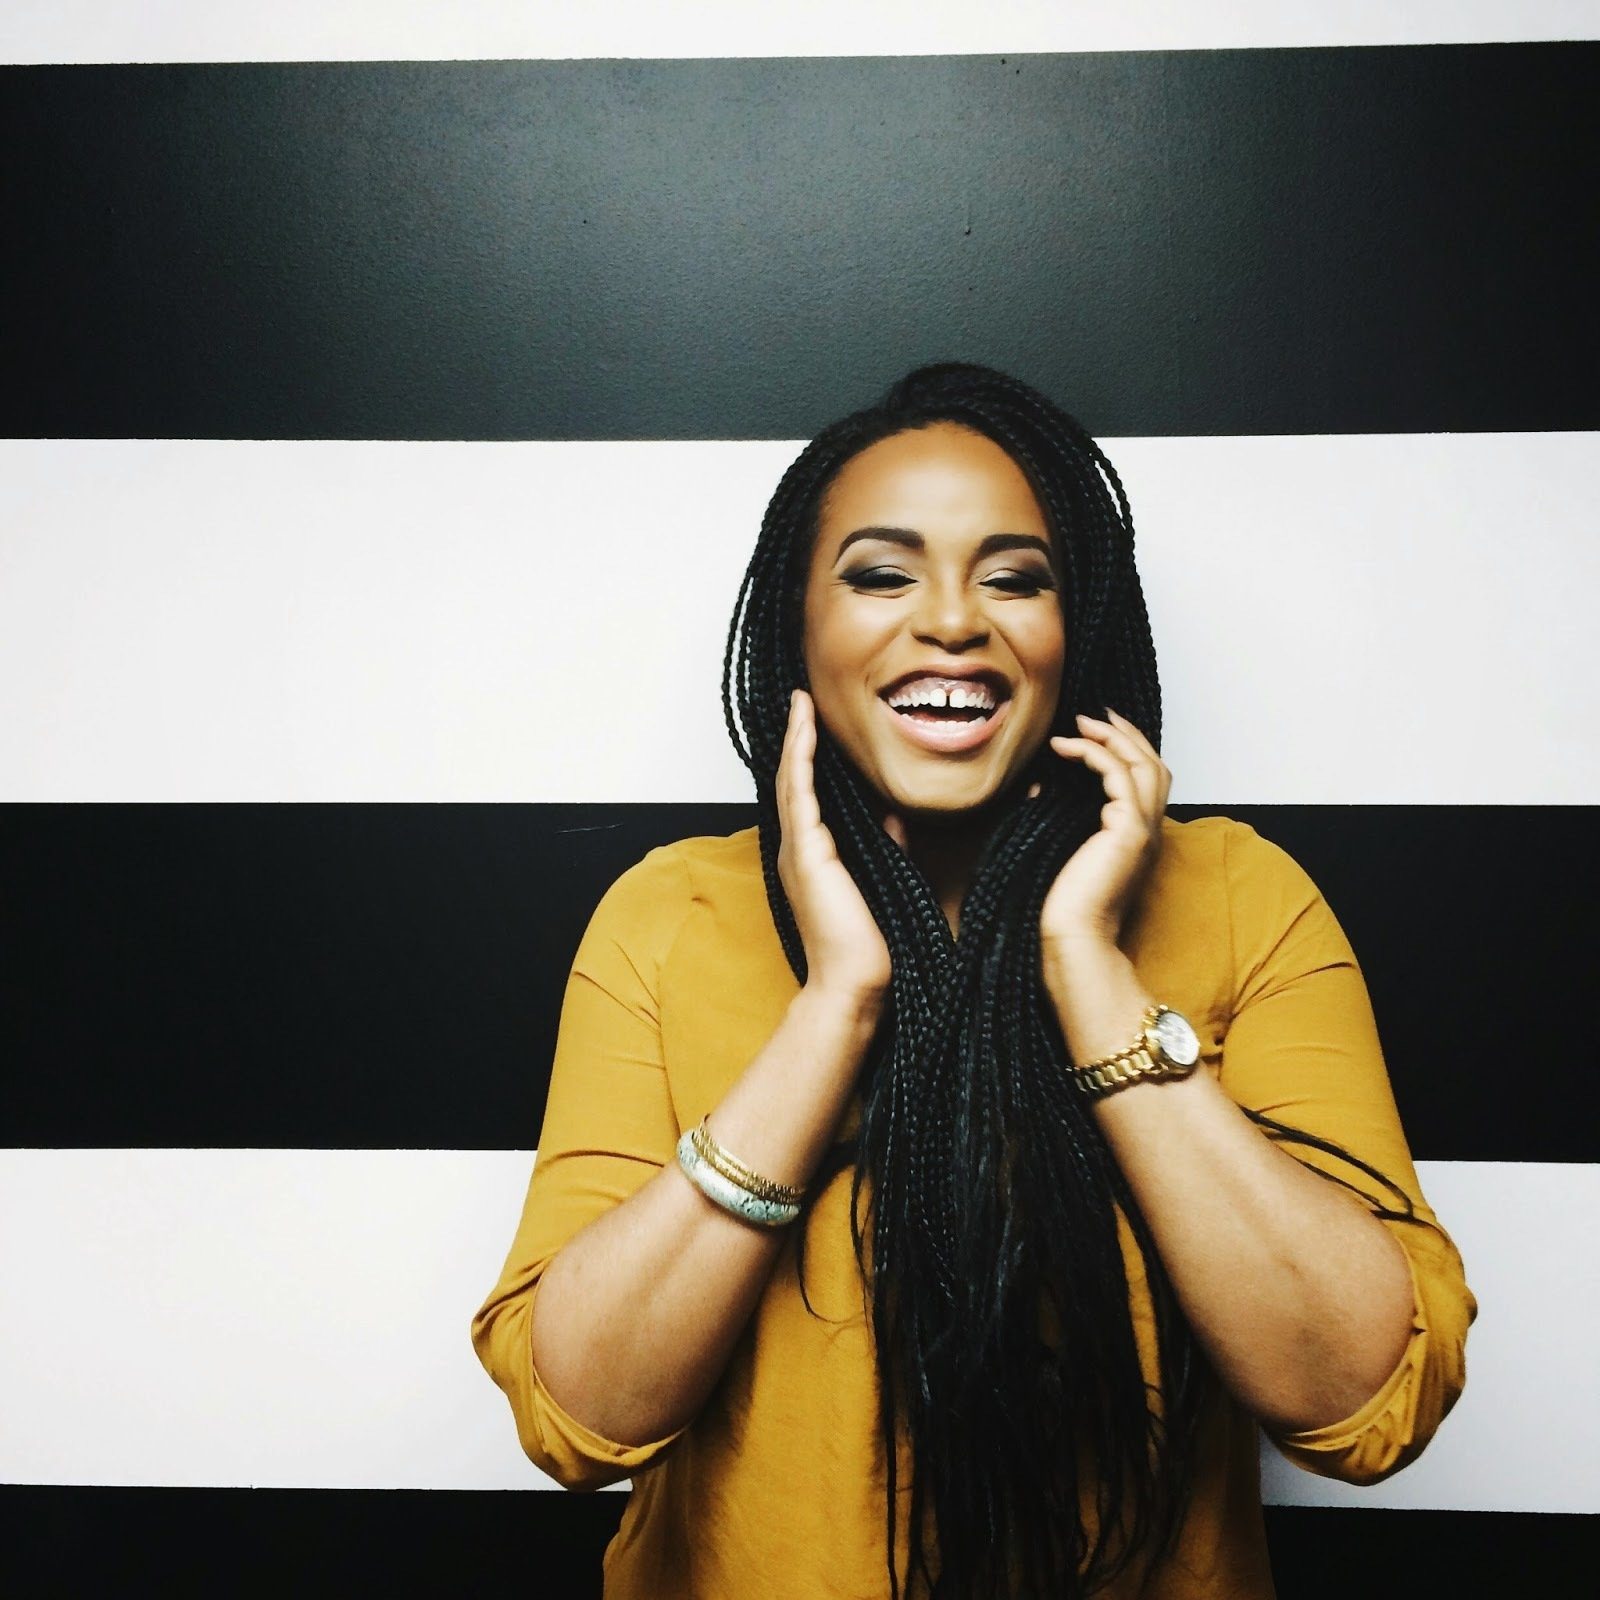 She Re-Mixed Cardi B's Song and Reshaped Education for Teachers and Students